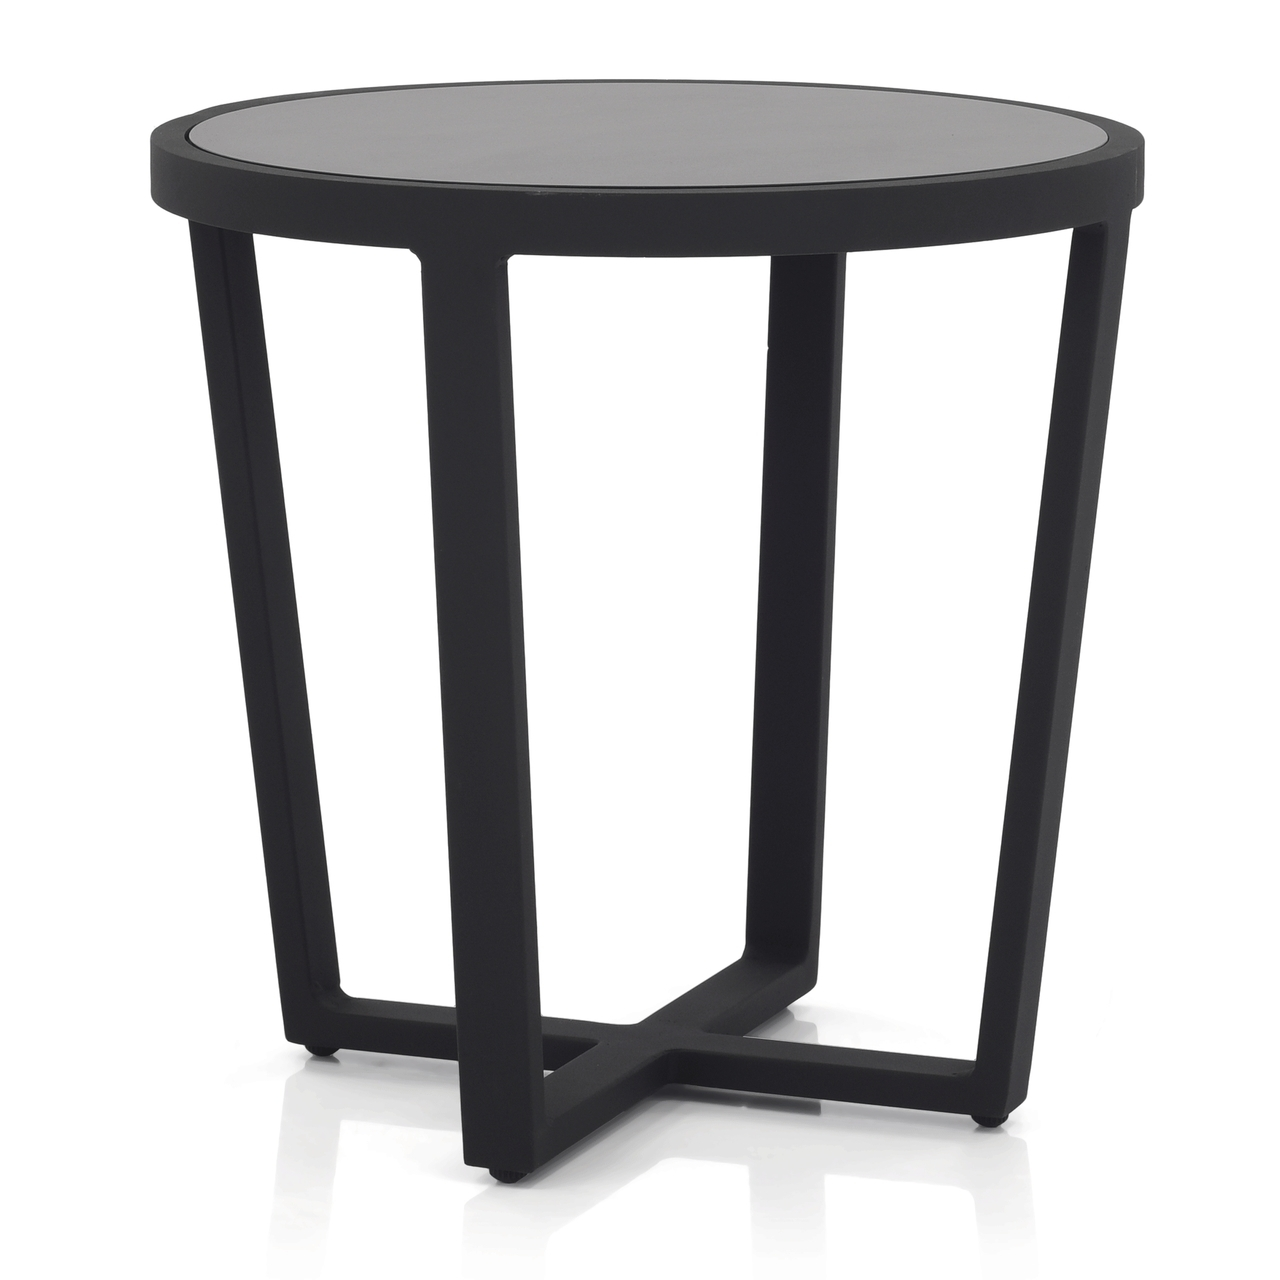 Marina club accent table